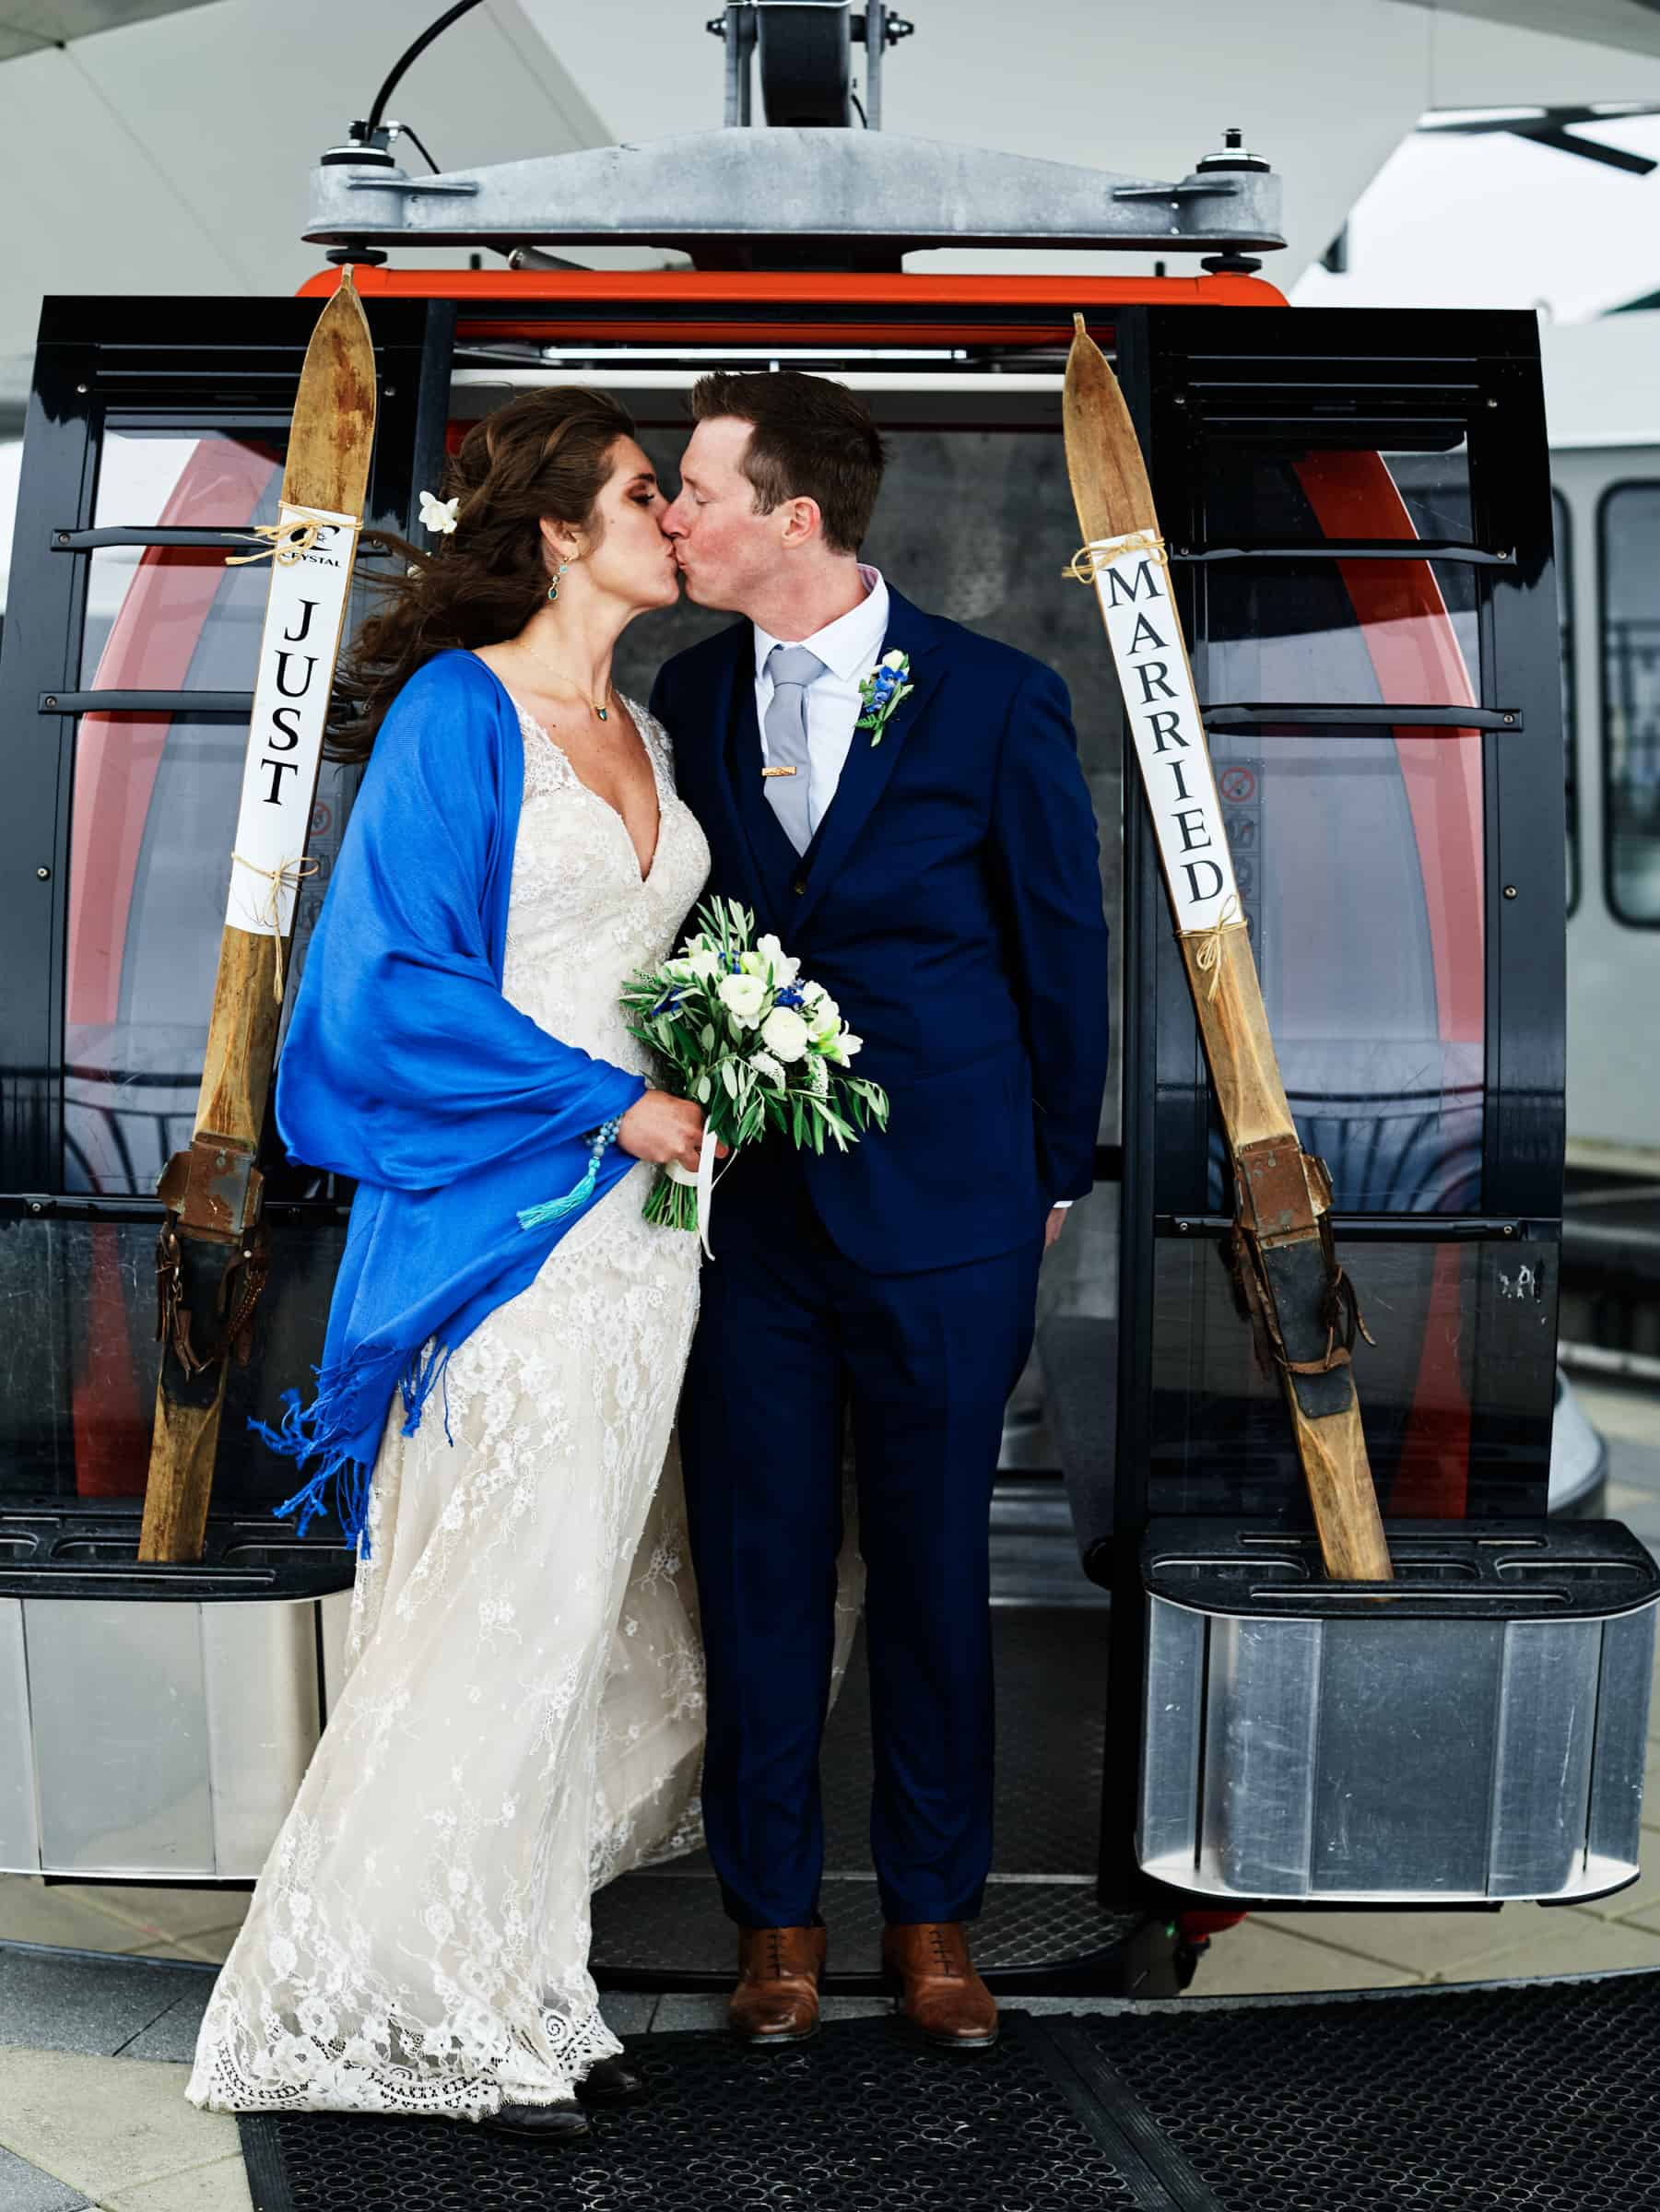 just married gondola portrait